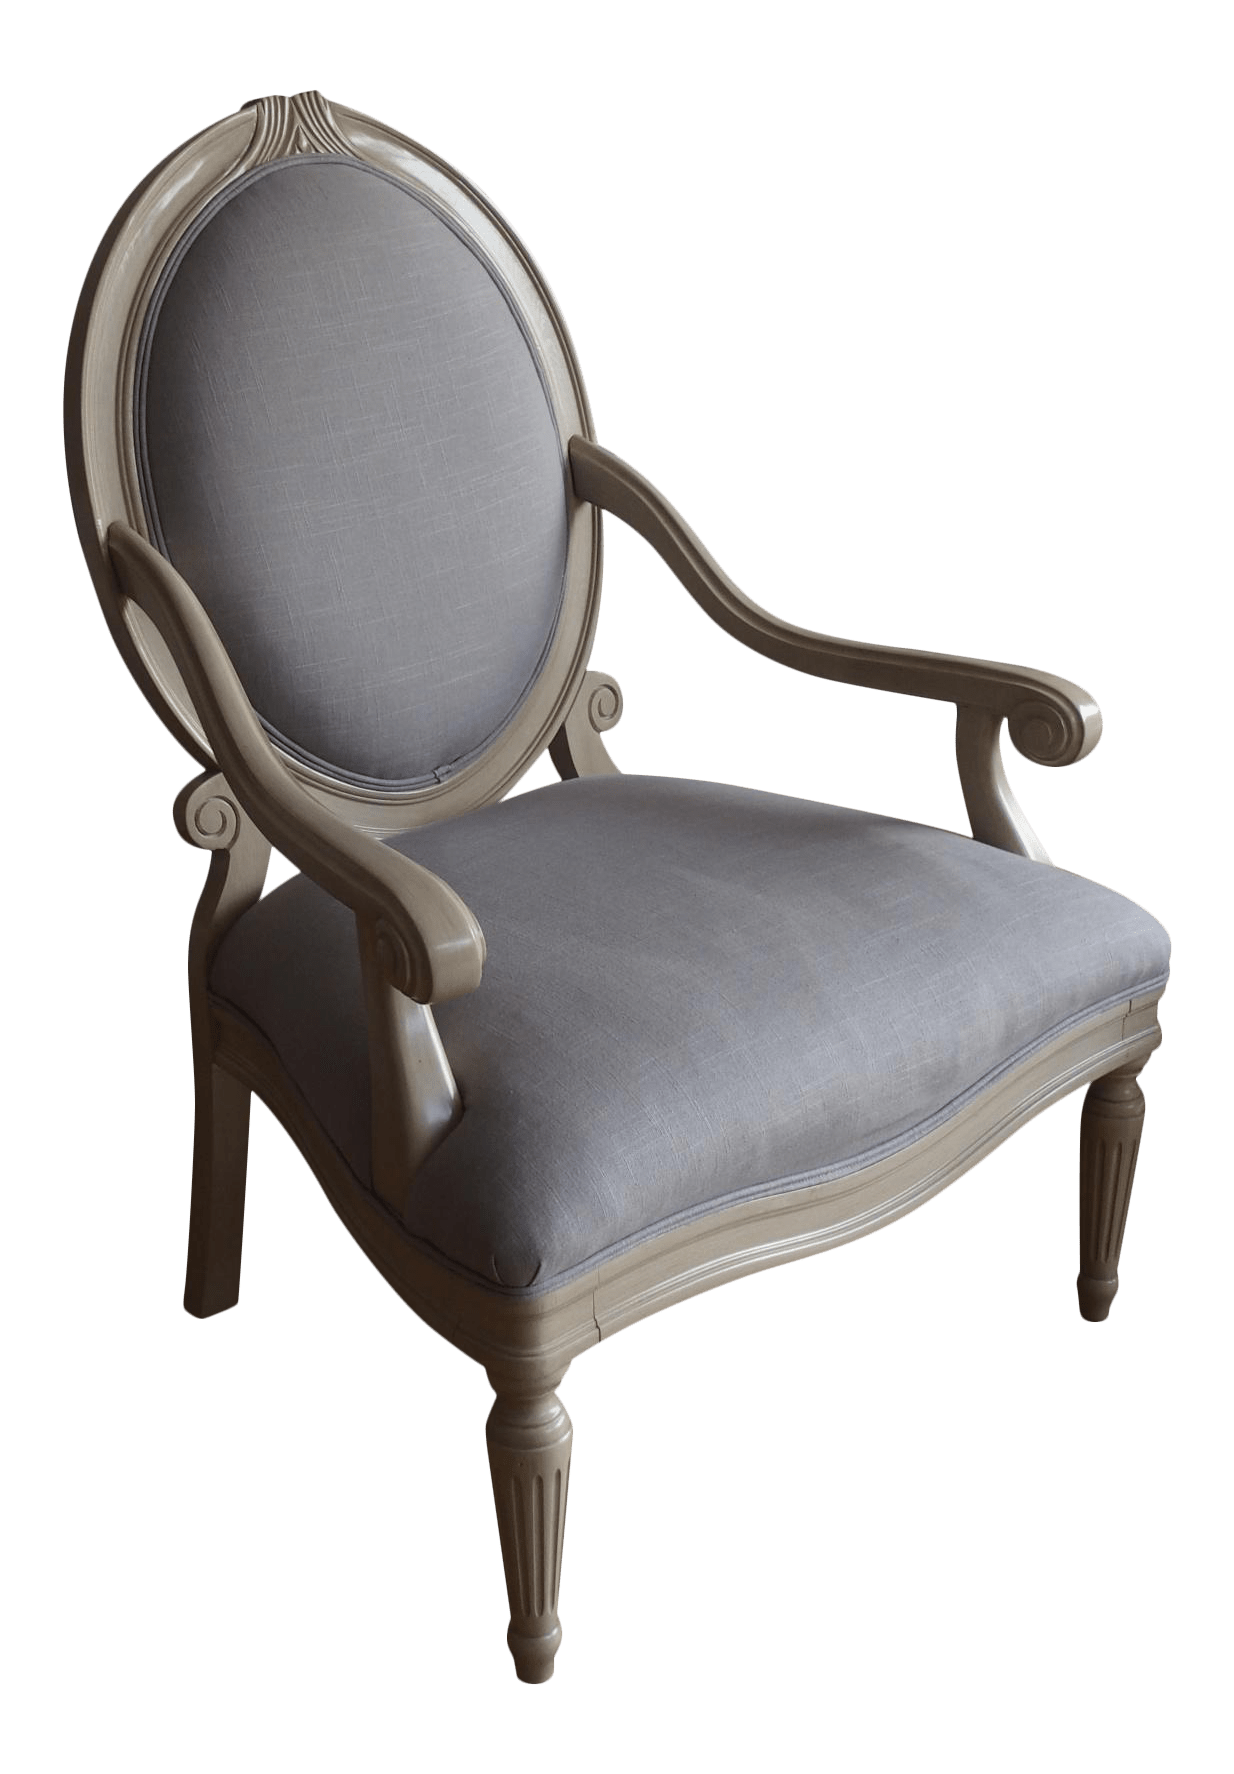 Light Gray Accent Chairs Armond Light Gray Accent Chair Chairish